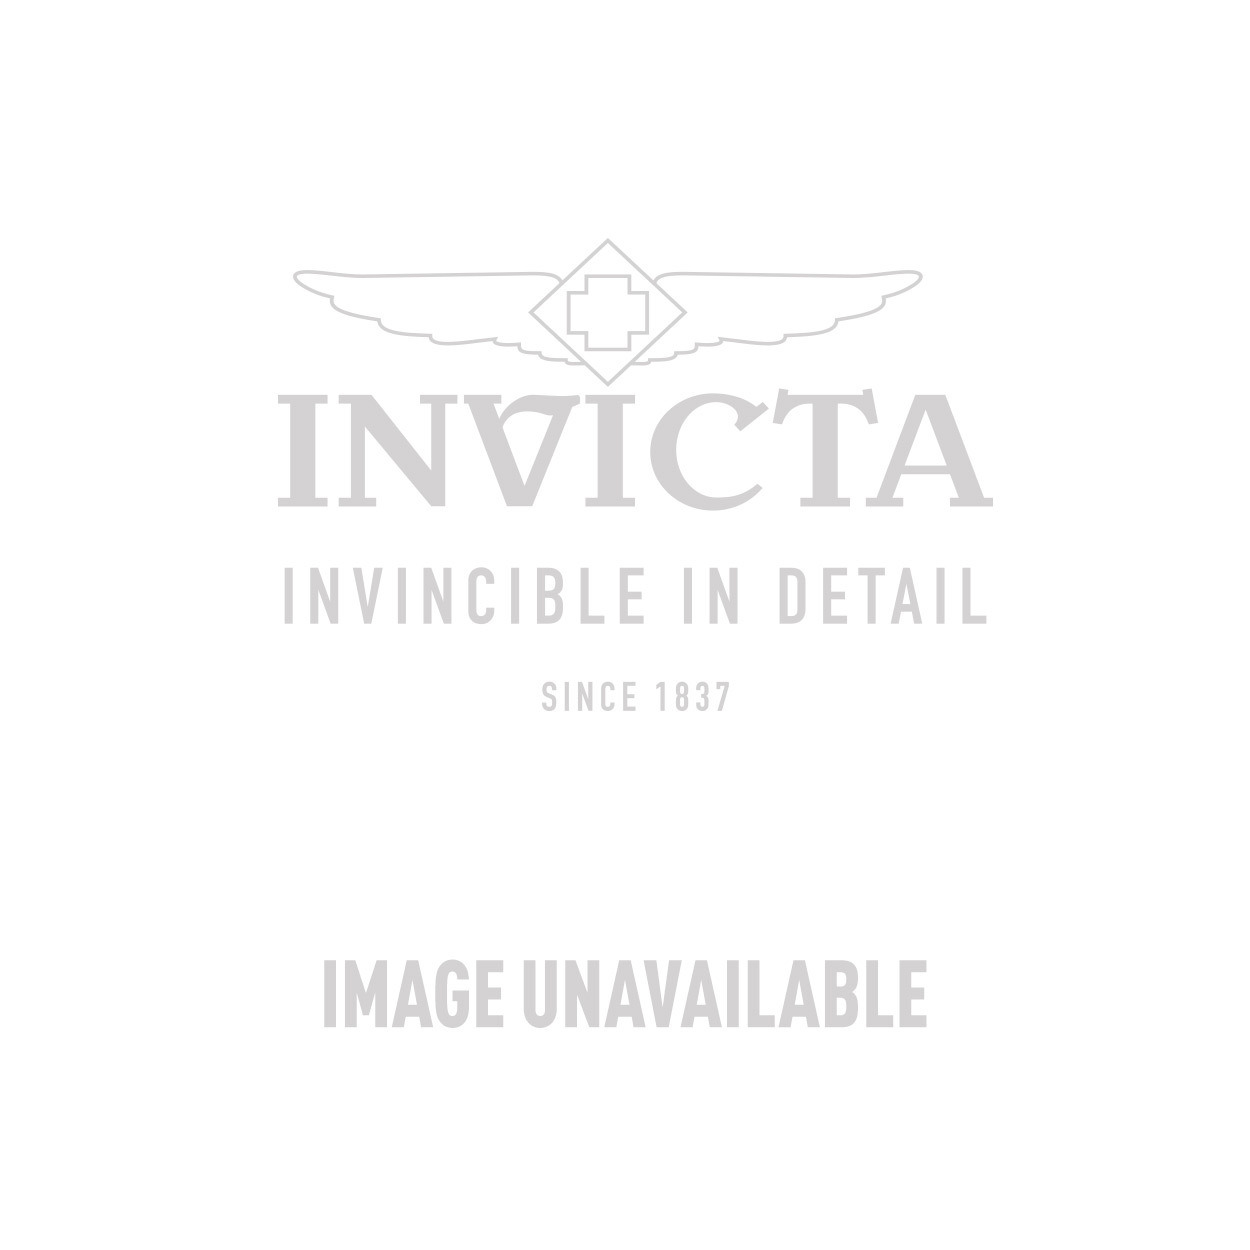 Invicta I-Force Quartz Watch - Stainless Steel case Stainless Steel band - Model 90161